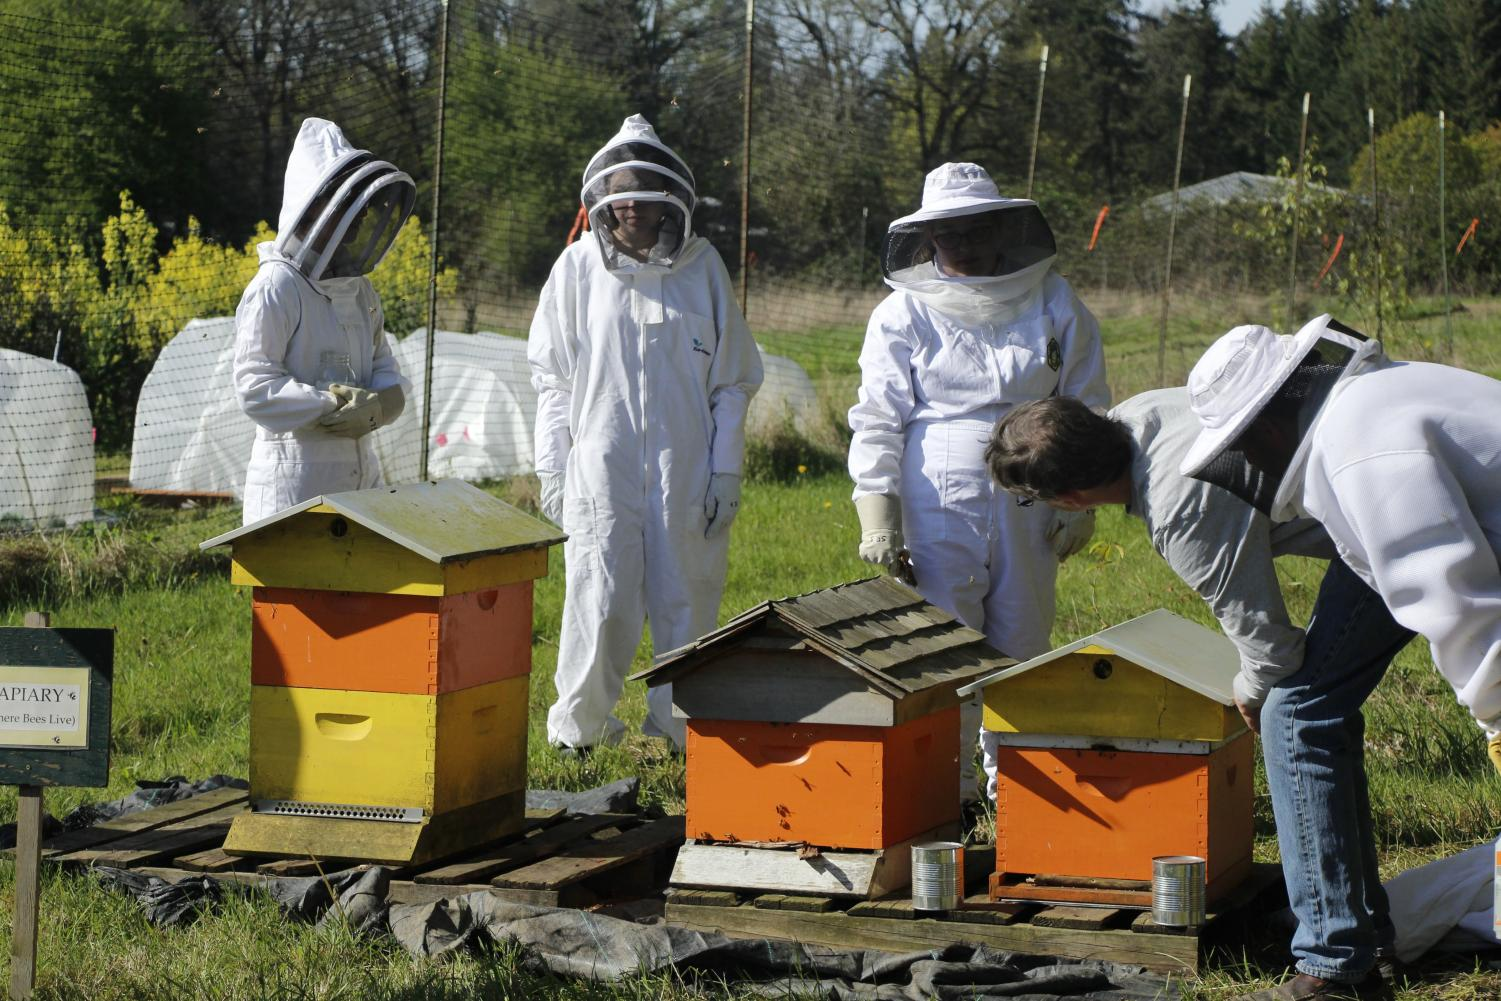 Checking the three bee boxes at Crest Farms, senior Andrea Swenson and juniors Sarah Martin and Tahnna Shaaban wait to inspect the hive. Crest Farms in Wilsonville offers a Beekeeping class for students to learn about bees and allowing them to work directly with nature.